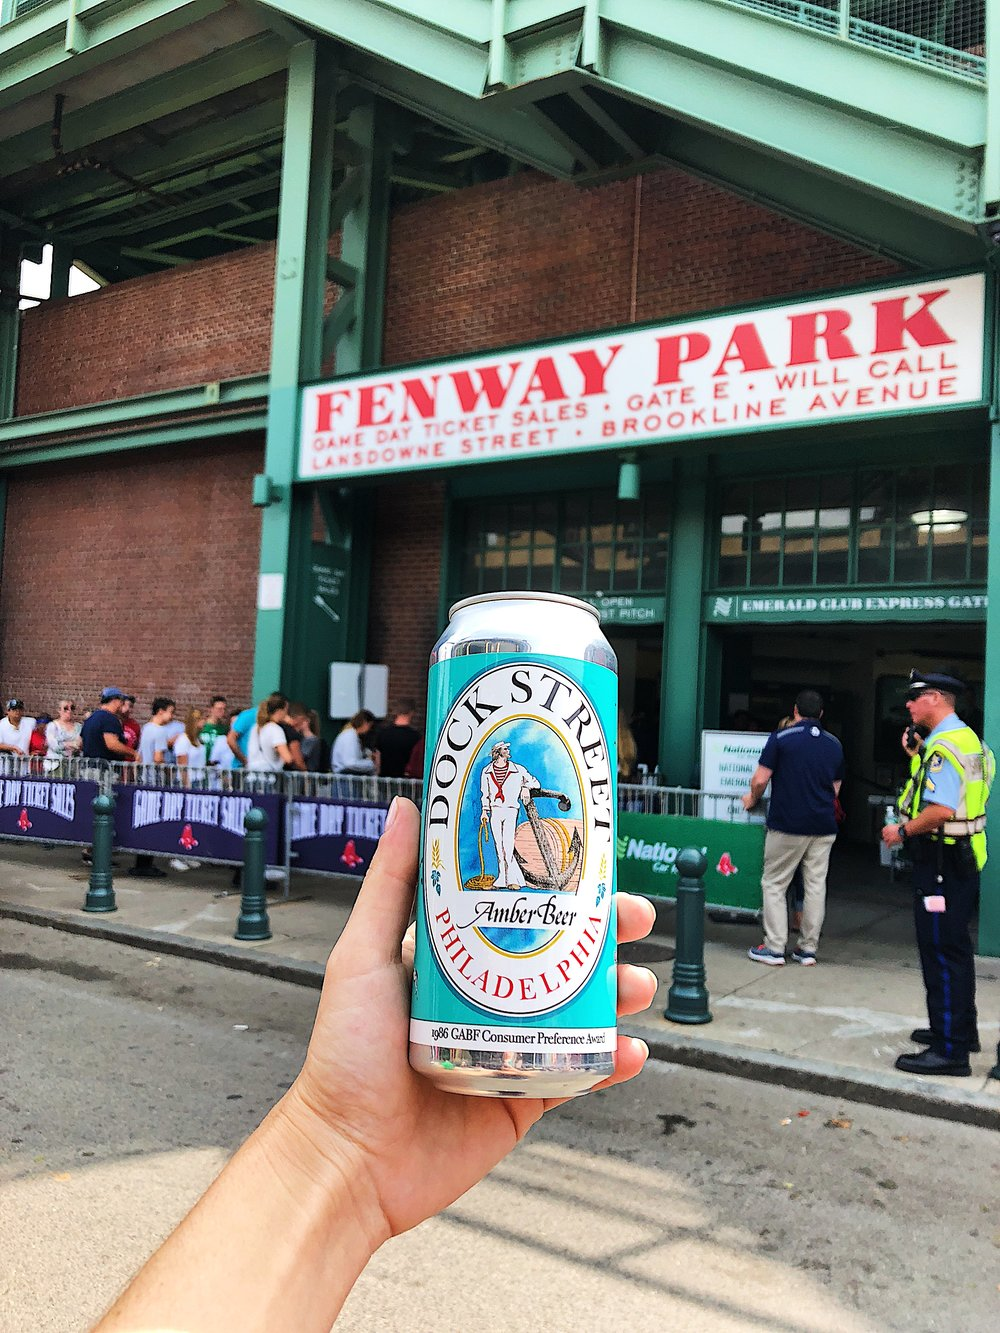 Snuck some Amber Ale into Fenway Park for the Red Sox game the DTR crew took us to!